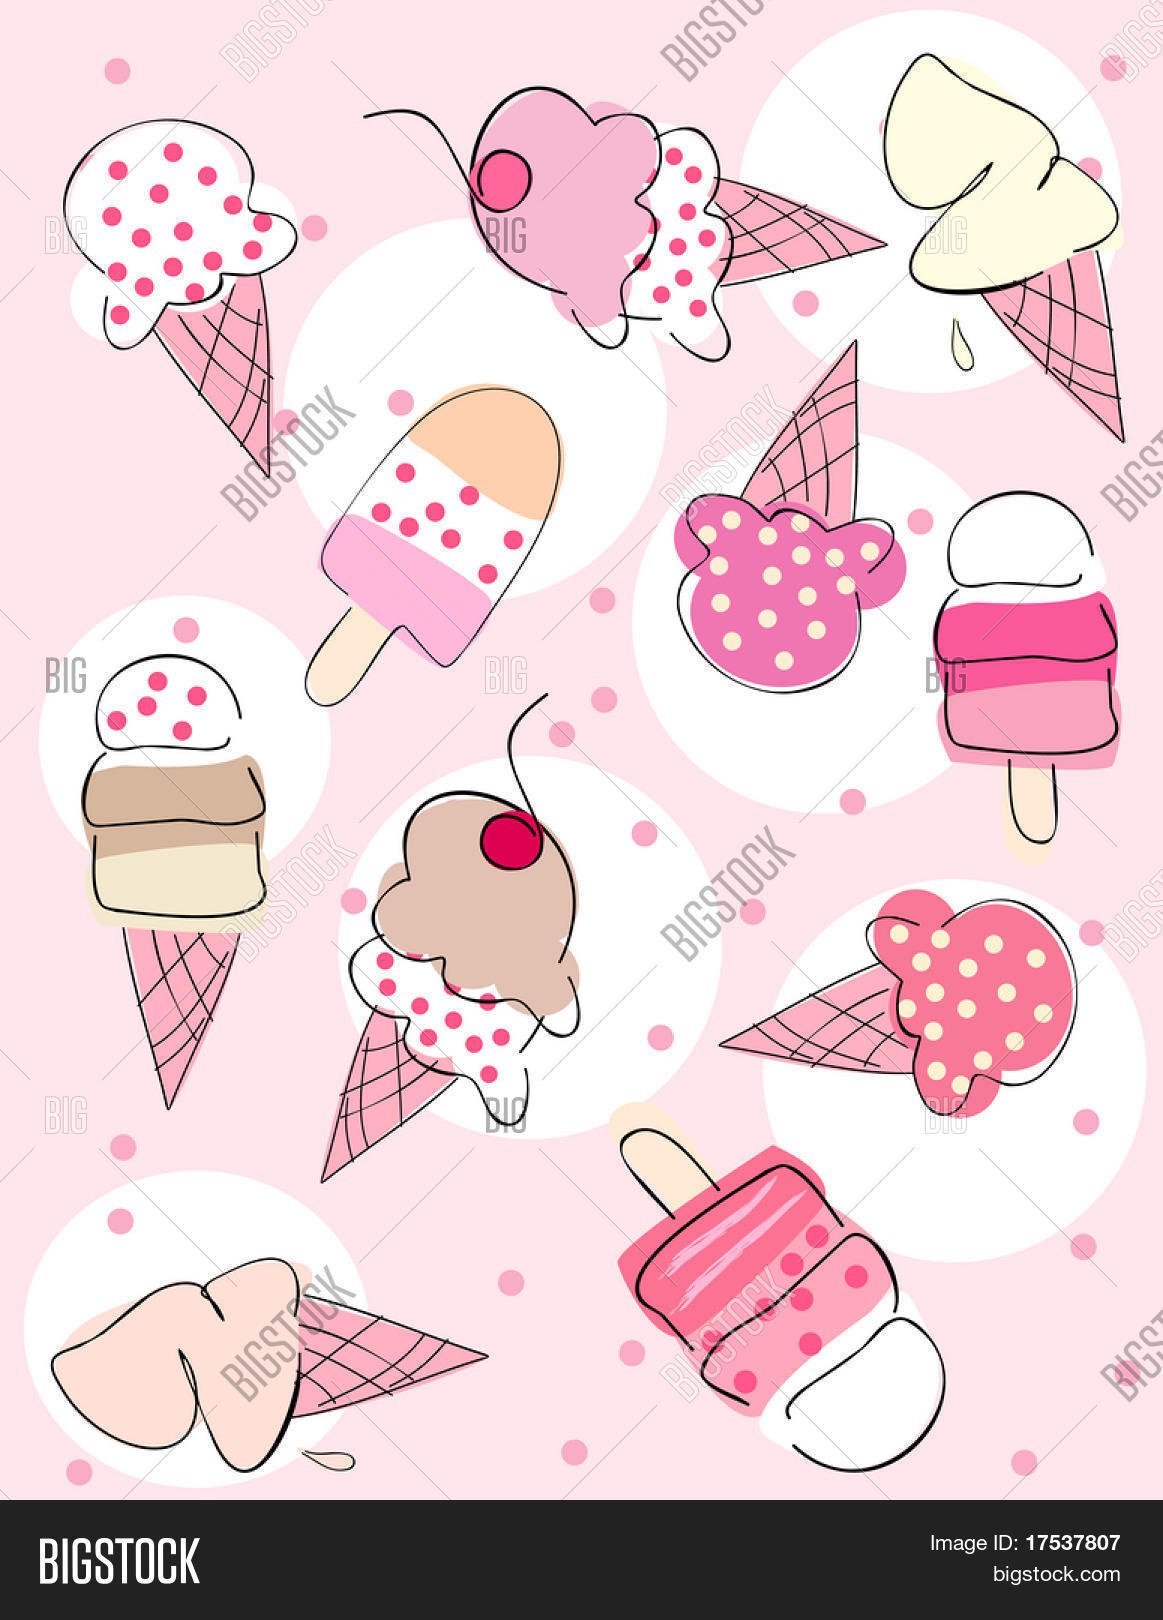 Ice Cream Background Vector Photo Free Trial Bigstock Check out our ice cream background selection for the very best in unique or custom, handmade pieces there are 1204 ice cream background for sale on etsy, and they cost $4.16 on average. ice cream background vector photo